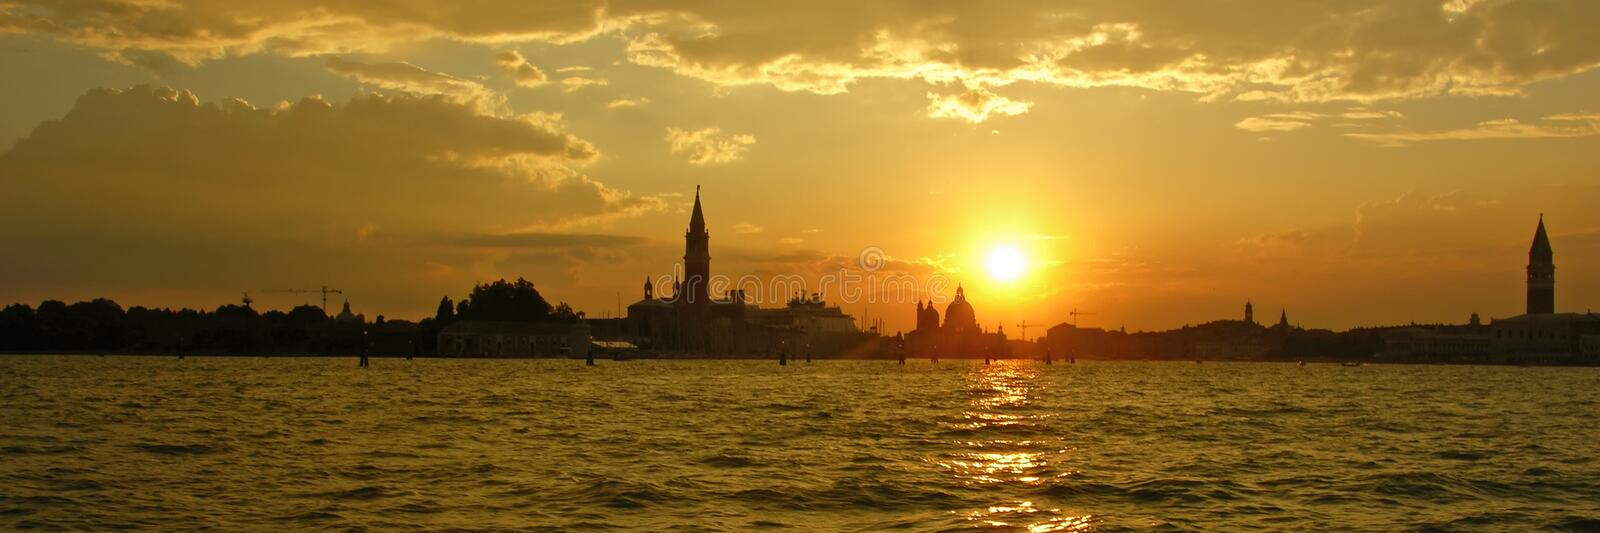 Download Sunset on Venice stock image. Image of europe, italia - 5324757